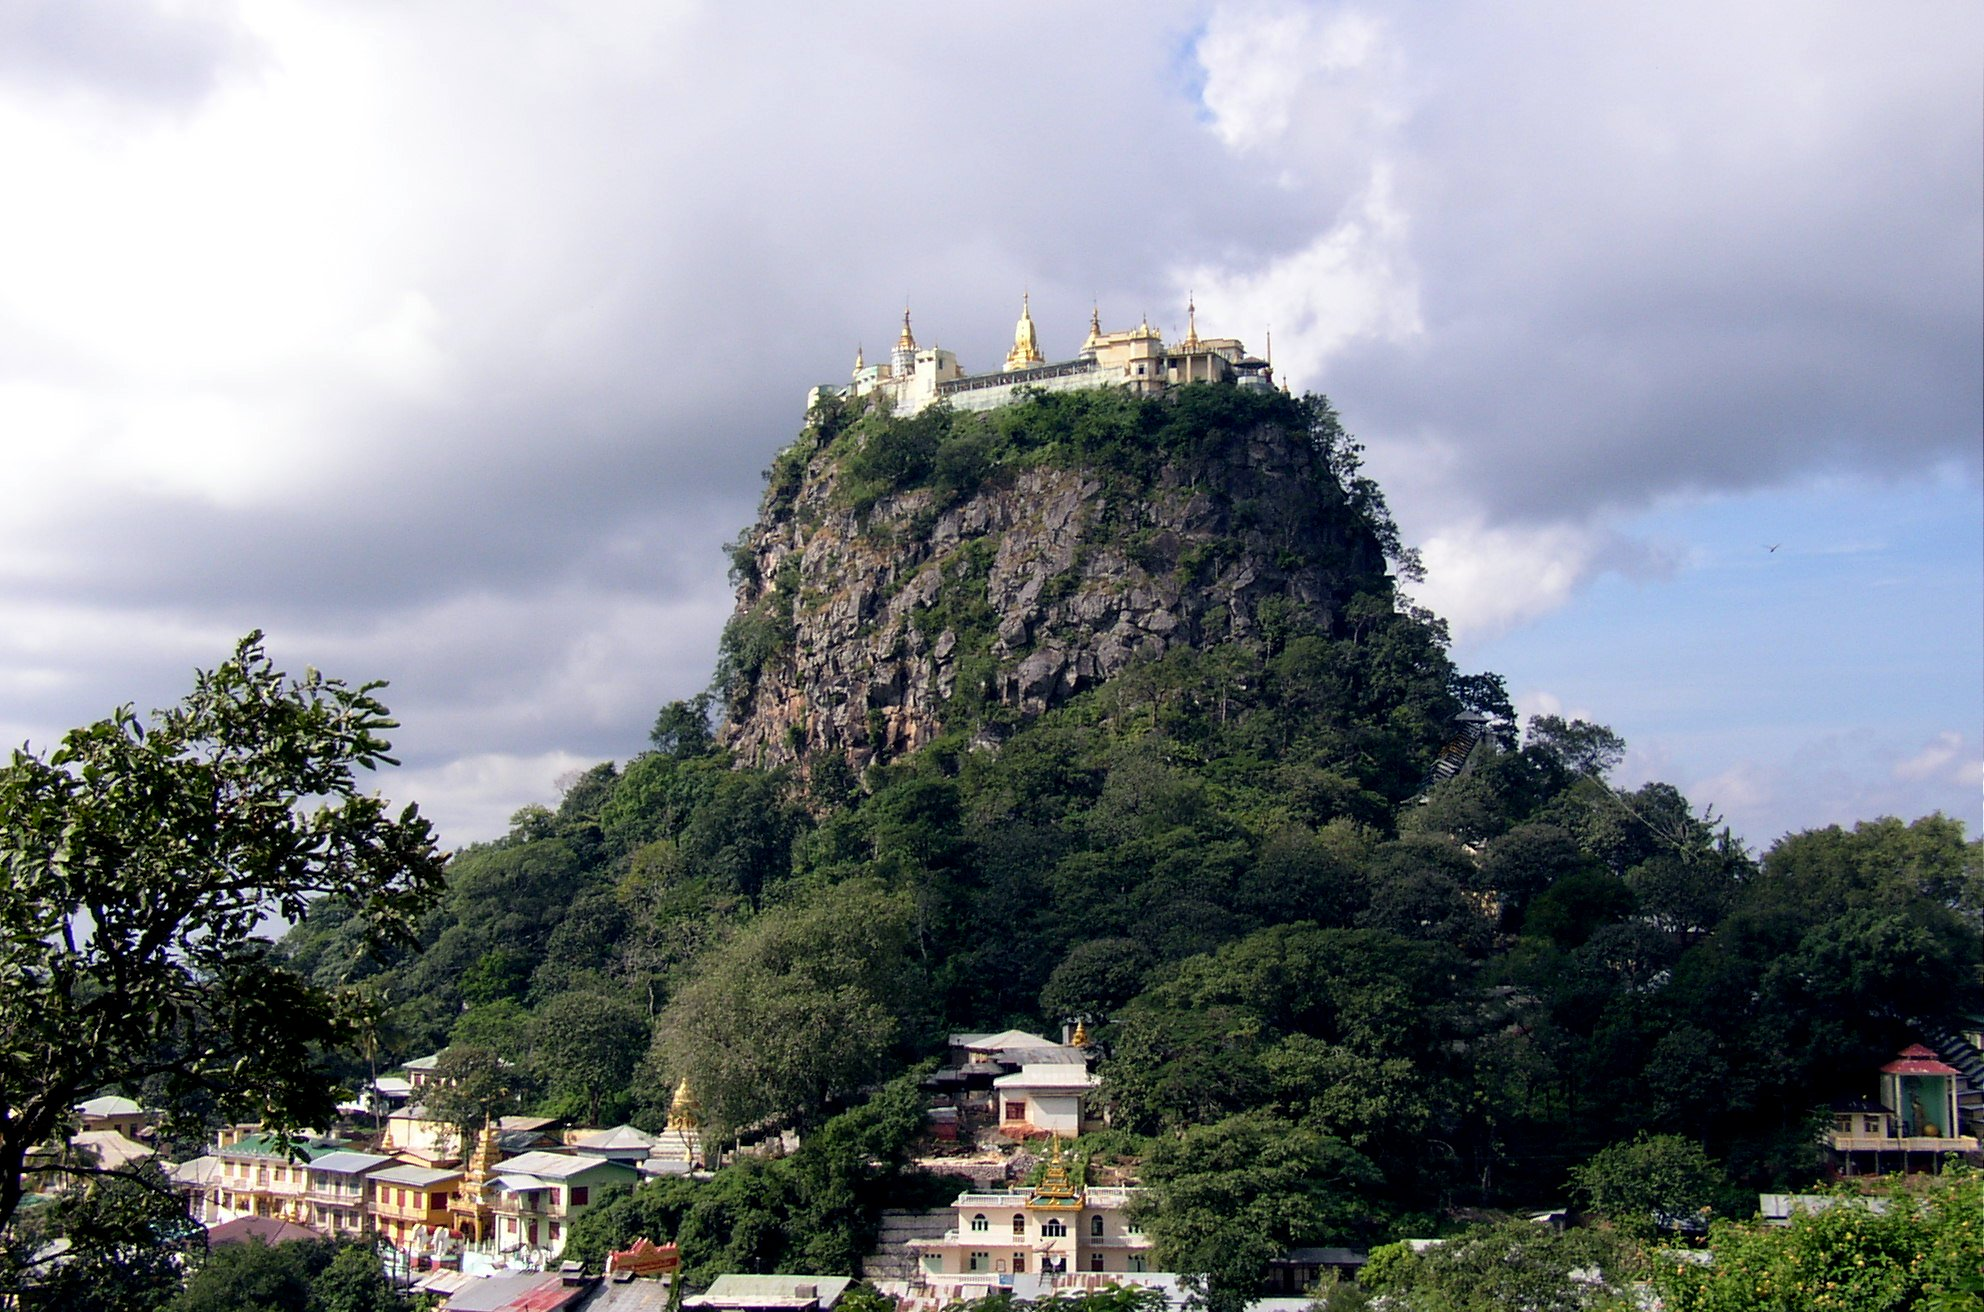 Mount Popa (Wikicommons)